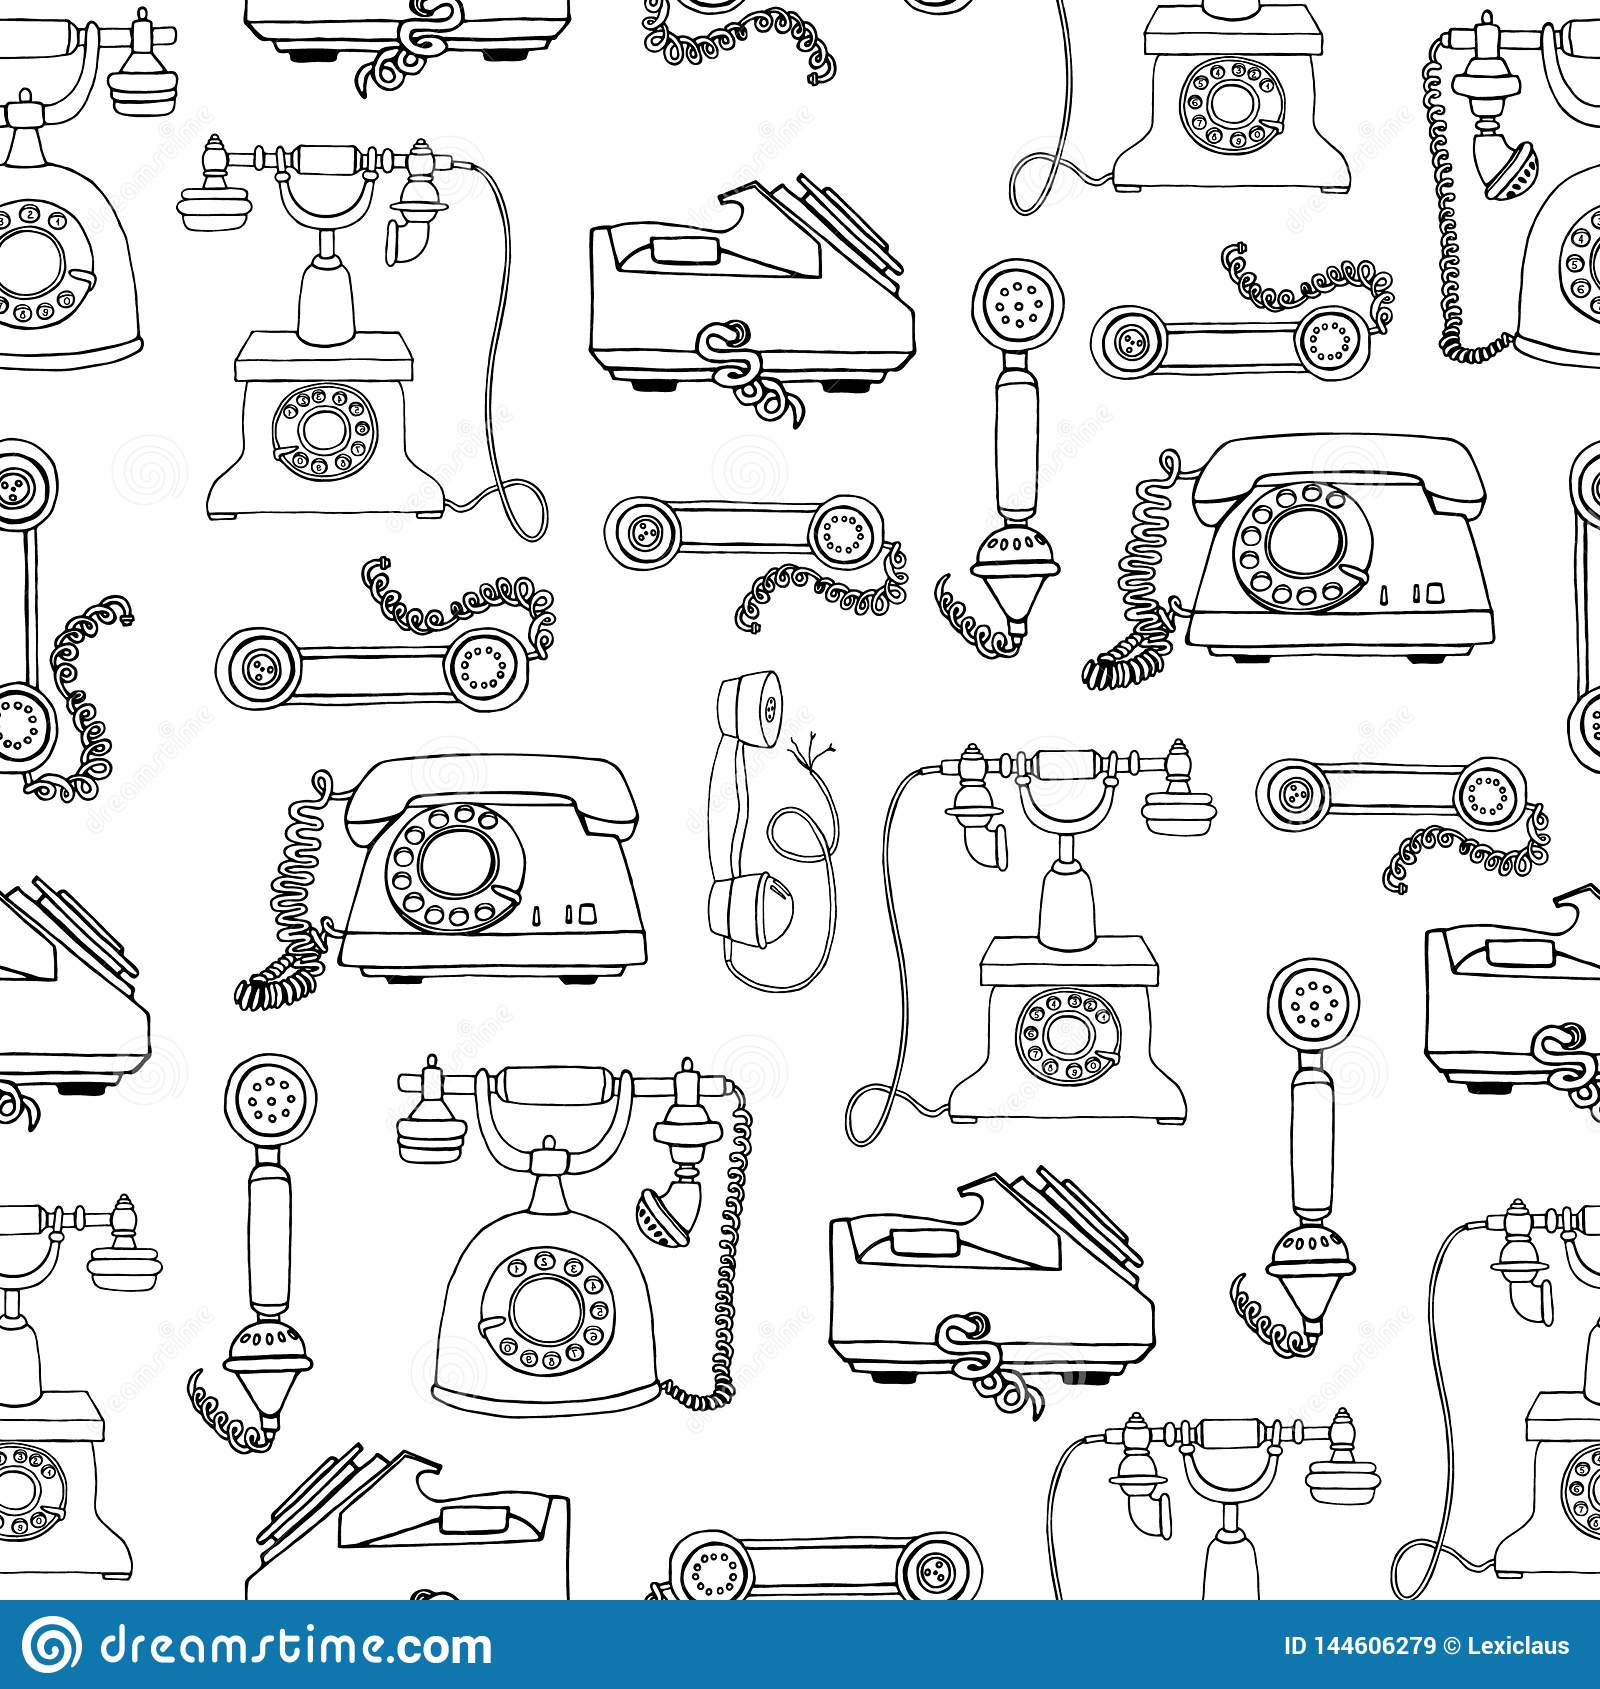 Old vintage telephone background. Vector seamless pattern of retro phones. Repeat backdrop of black telephones isolated on white